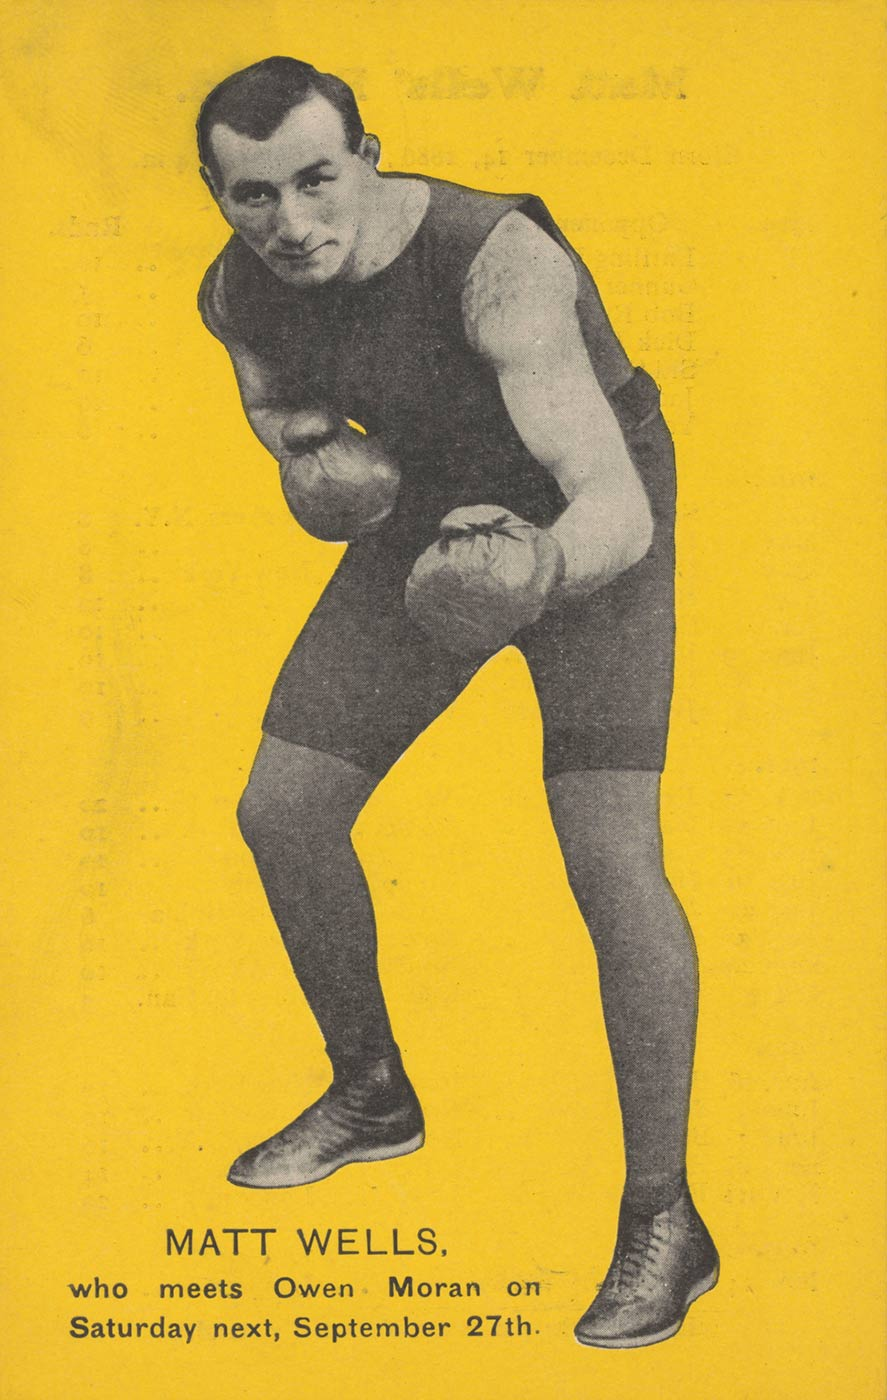 A postcard featuring a black and white photograph of a boxer in fighting pose. Yellow background. - click to view larger image